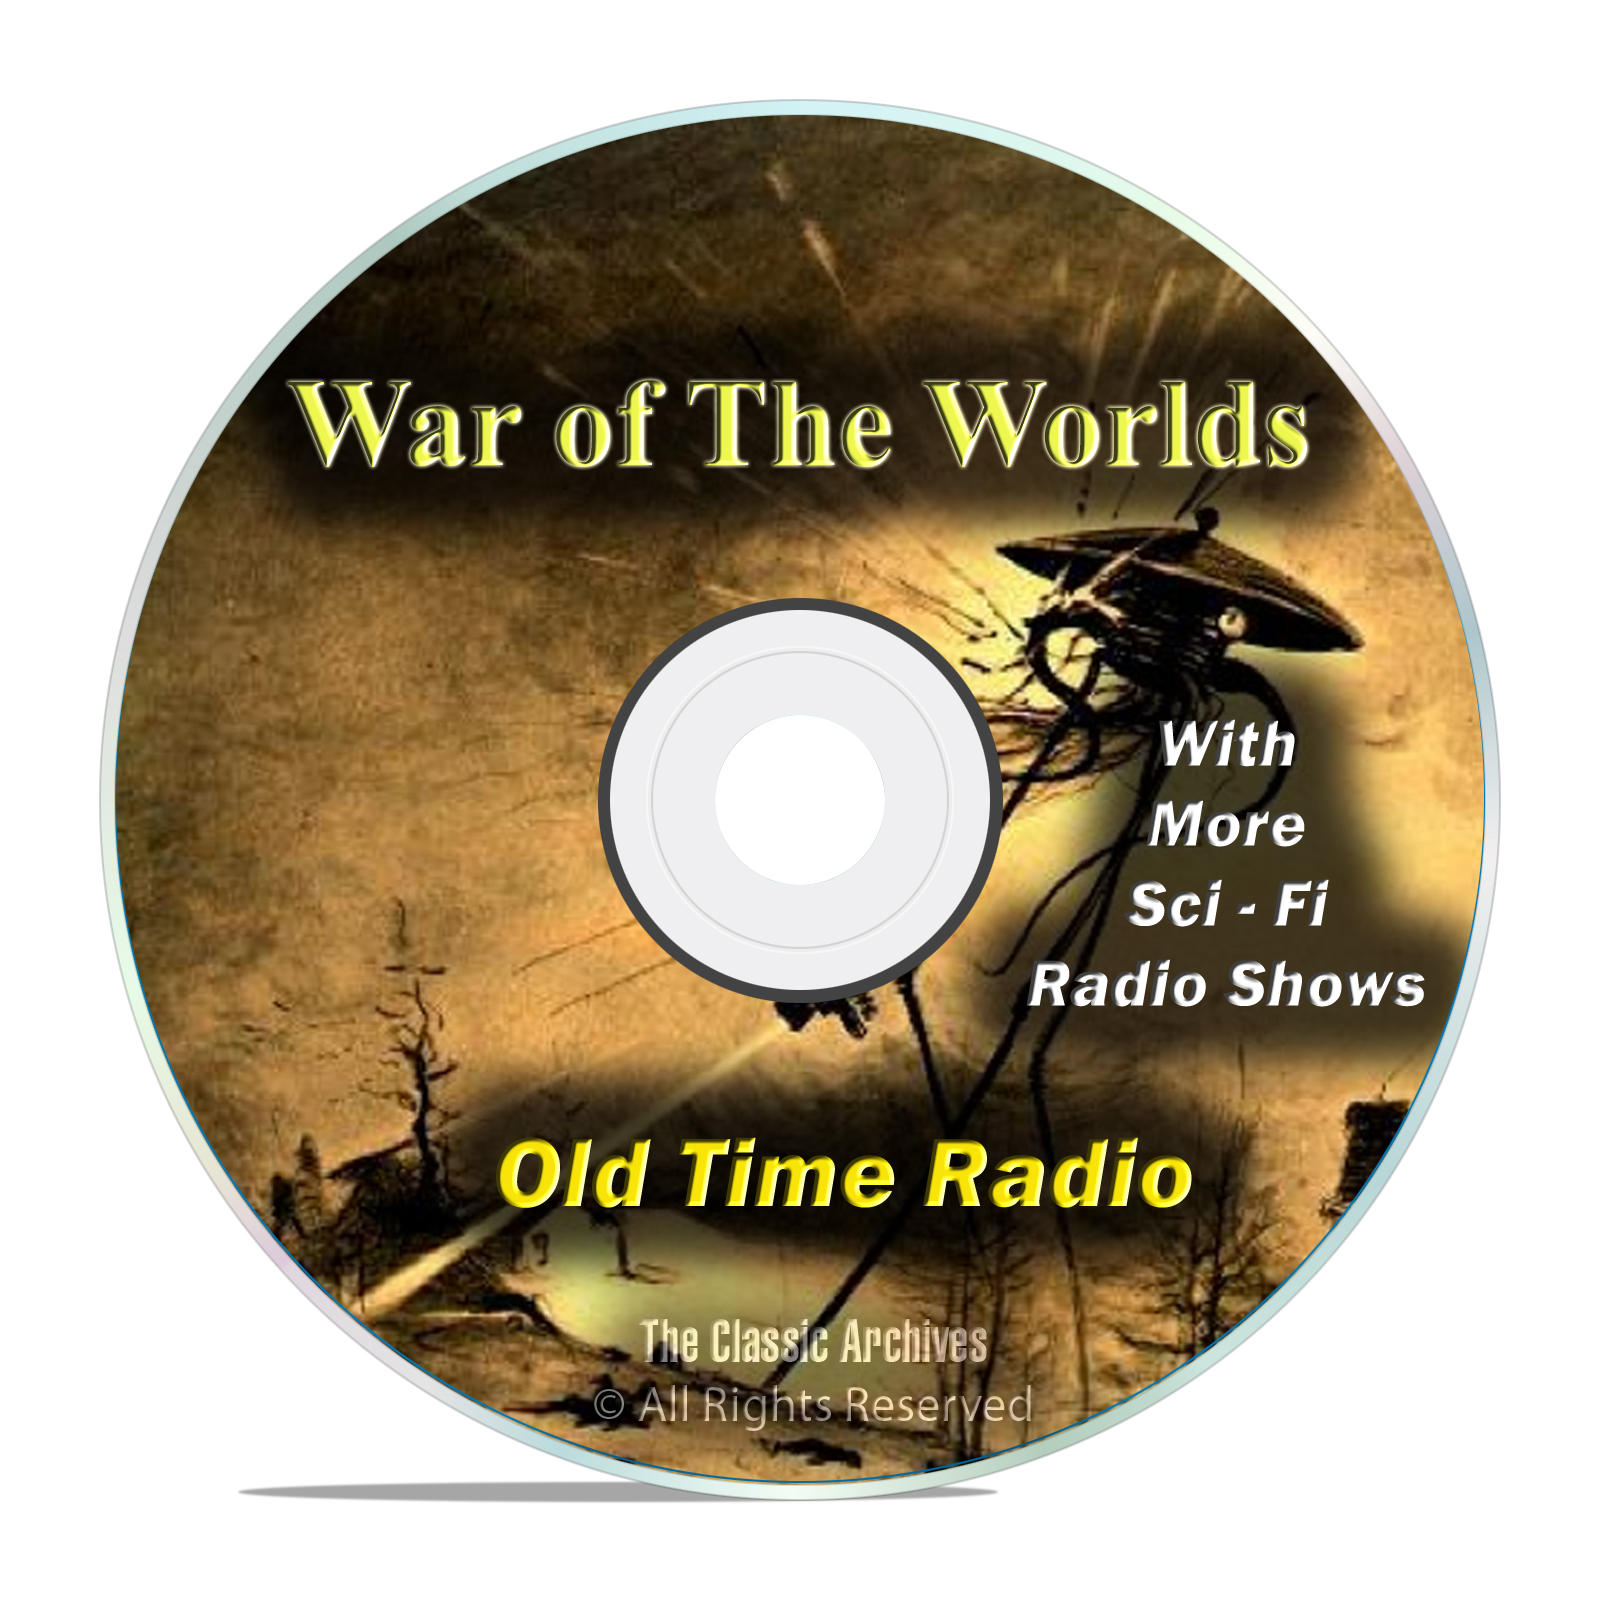 The War of the Worlds, HG Wells, with 960 Old Time Radio SCI FI Episodes